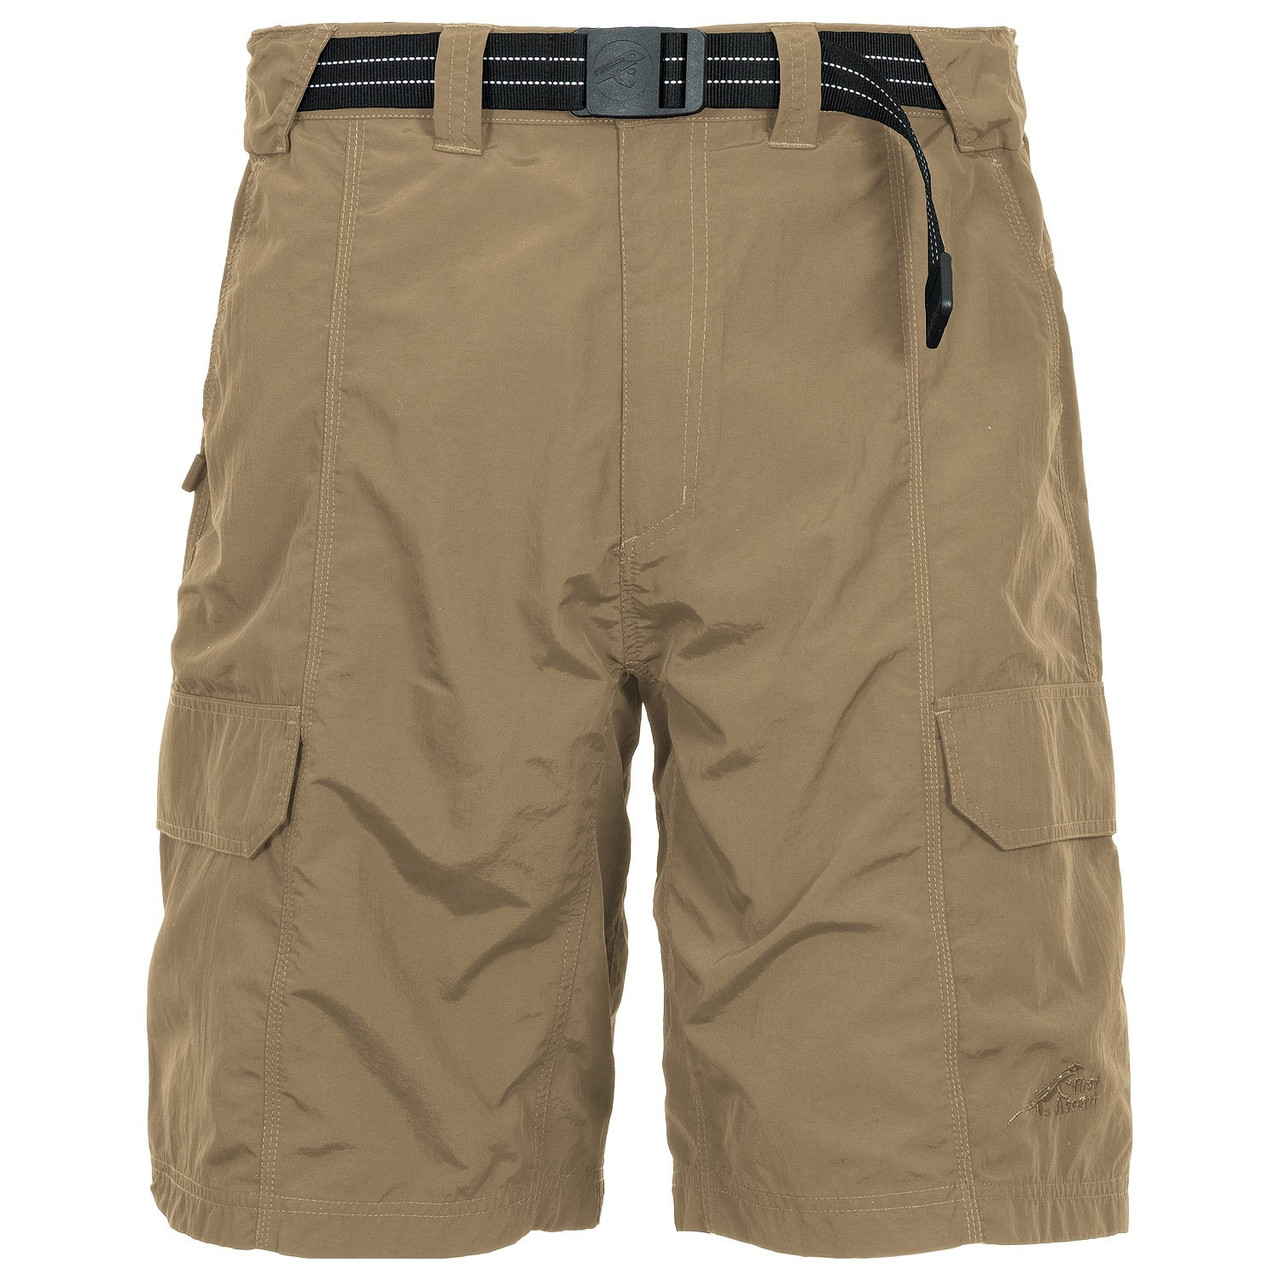 First Ascent Delta Shorts Men's